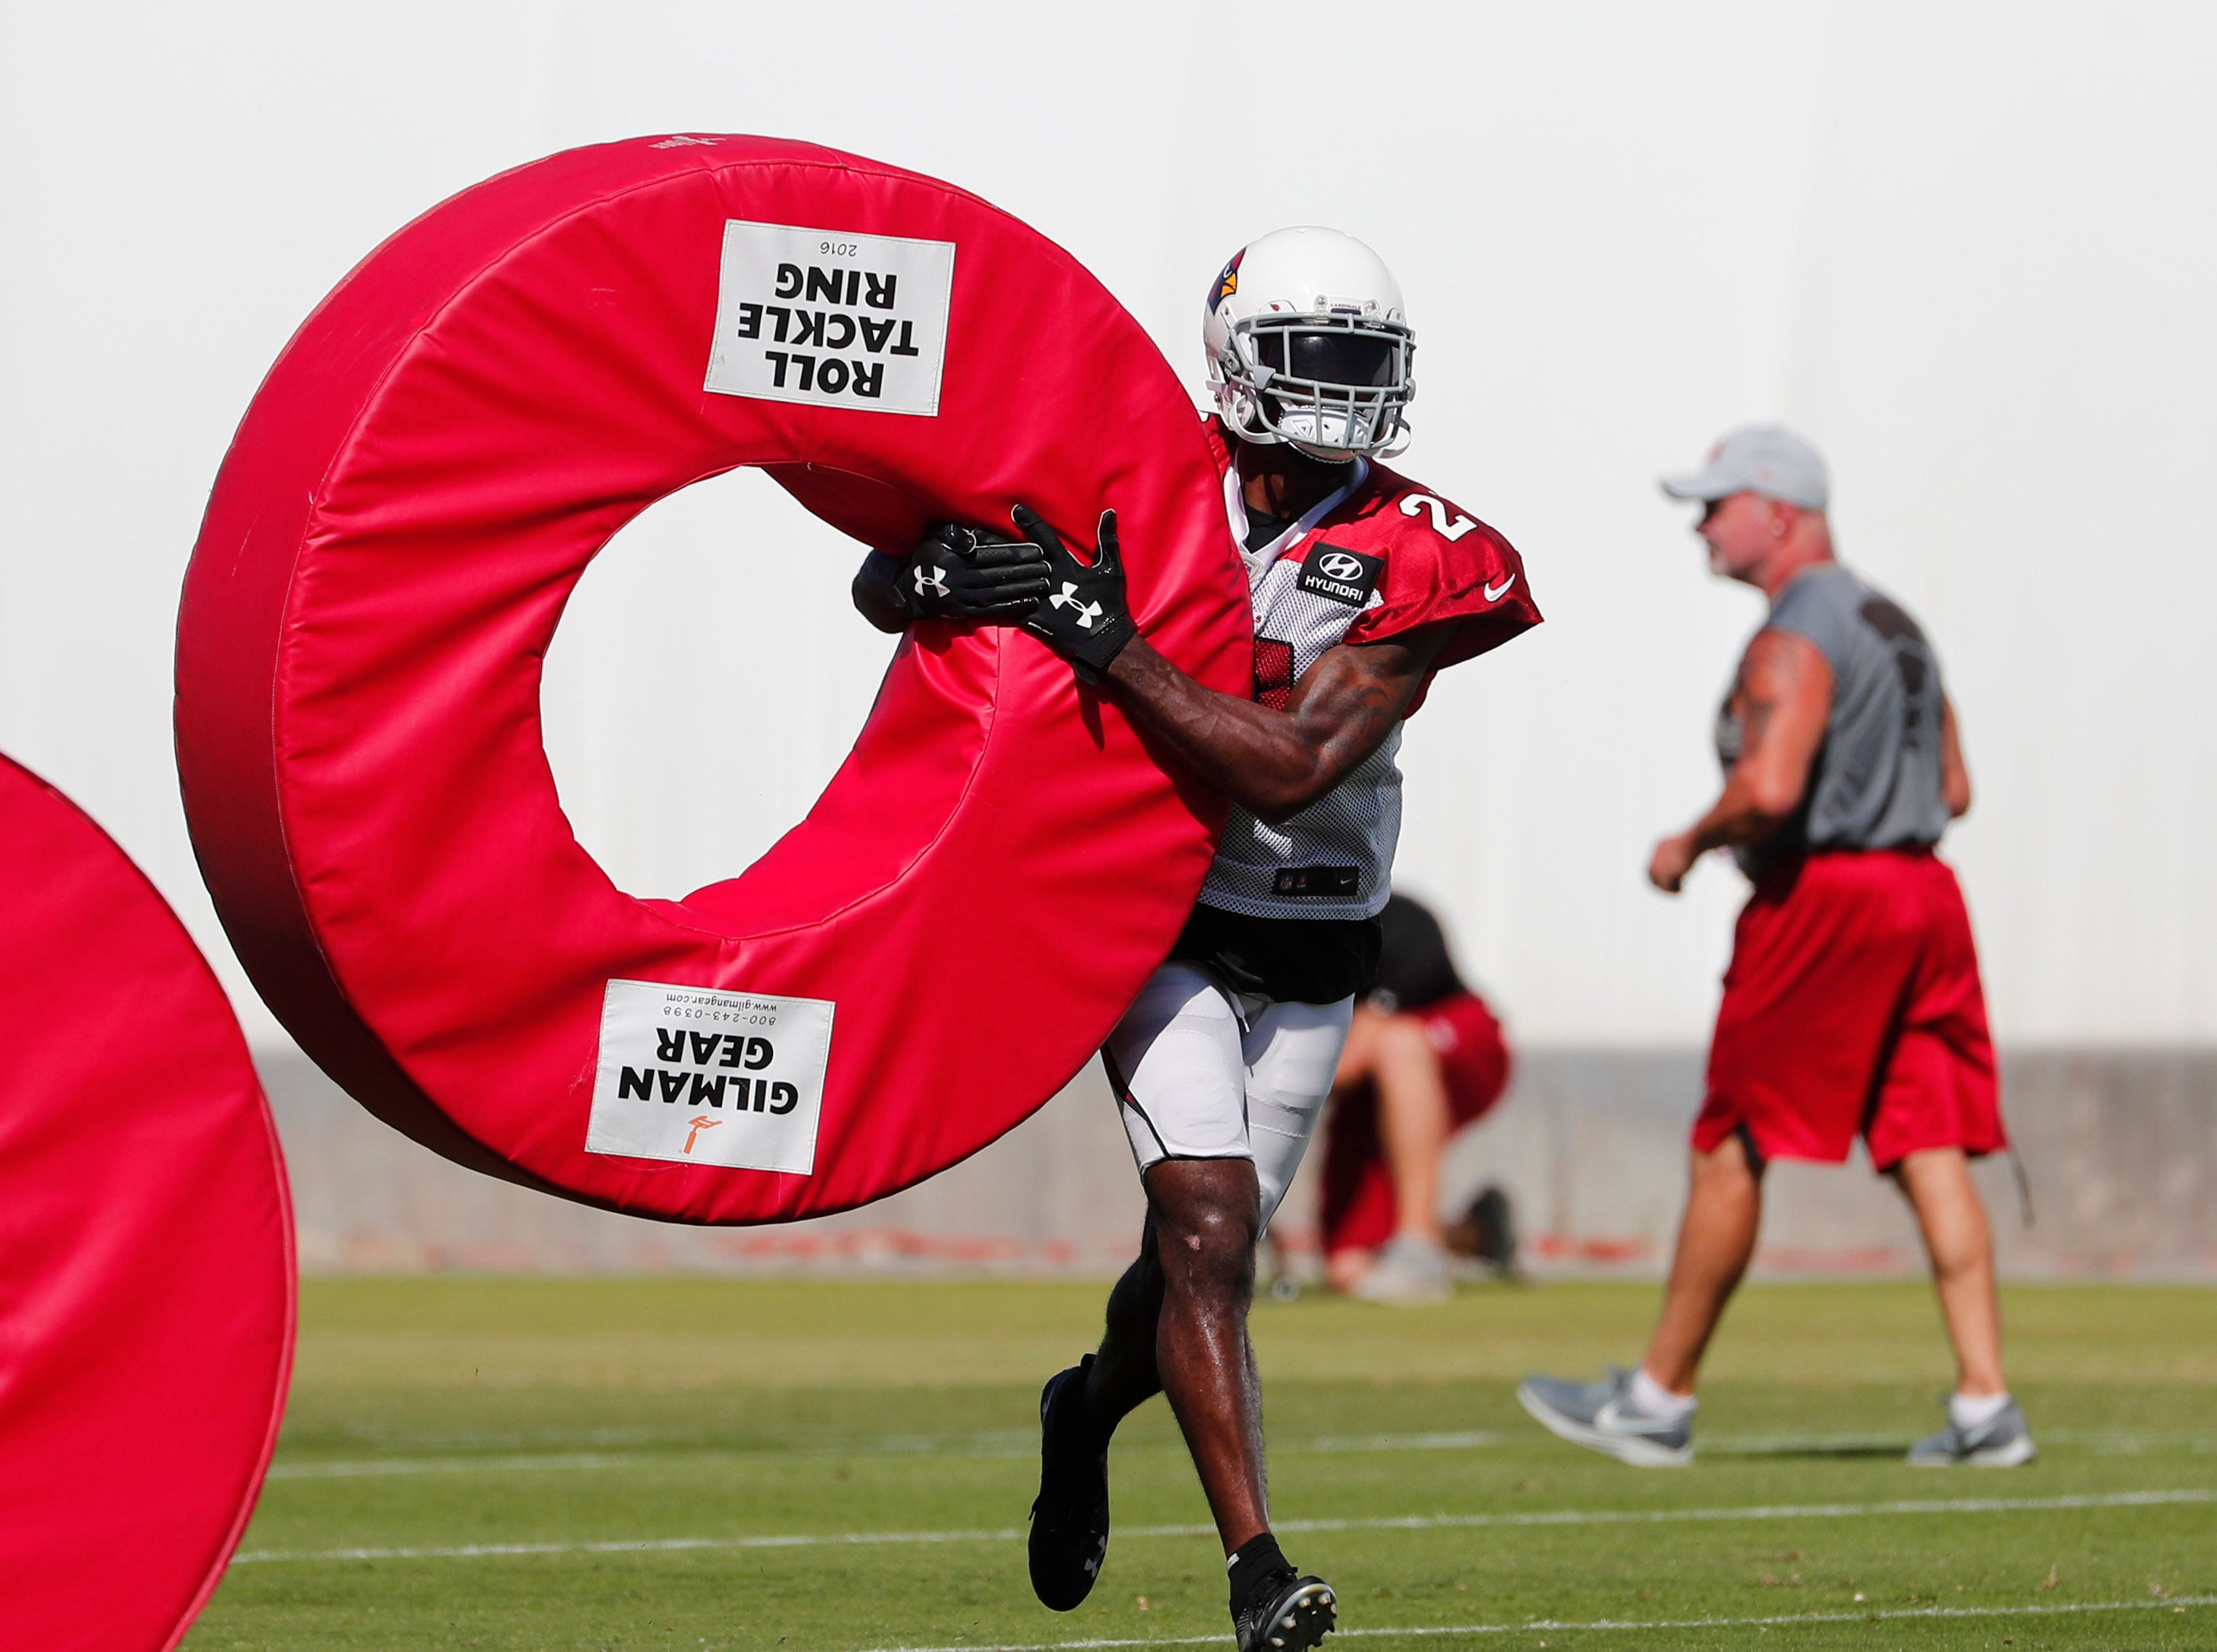 Arizona Cardinals cornerback Patrick Peterson (21) performs a drill during practice in Tempe, Ariz. October 24, 2018.